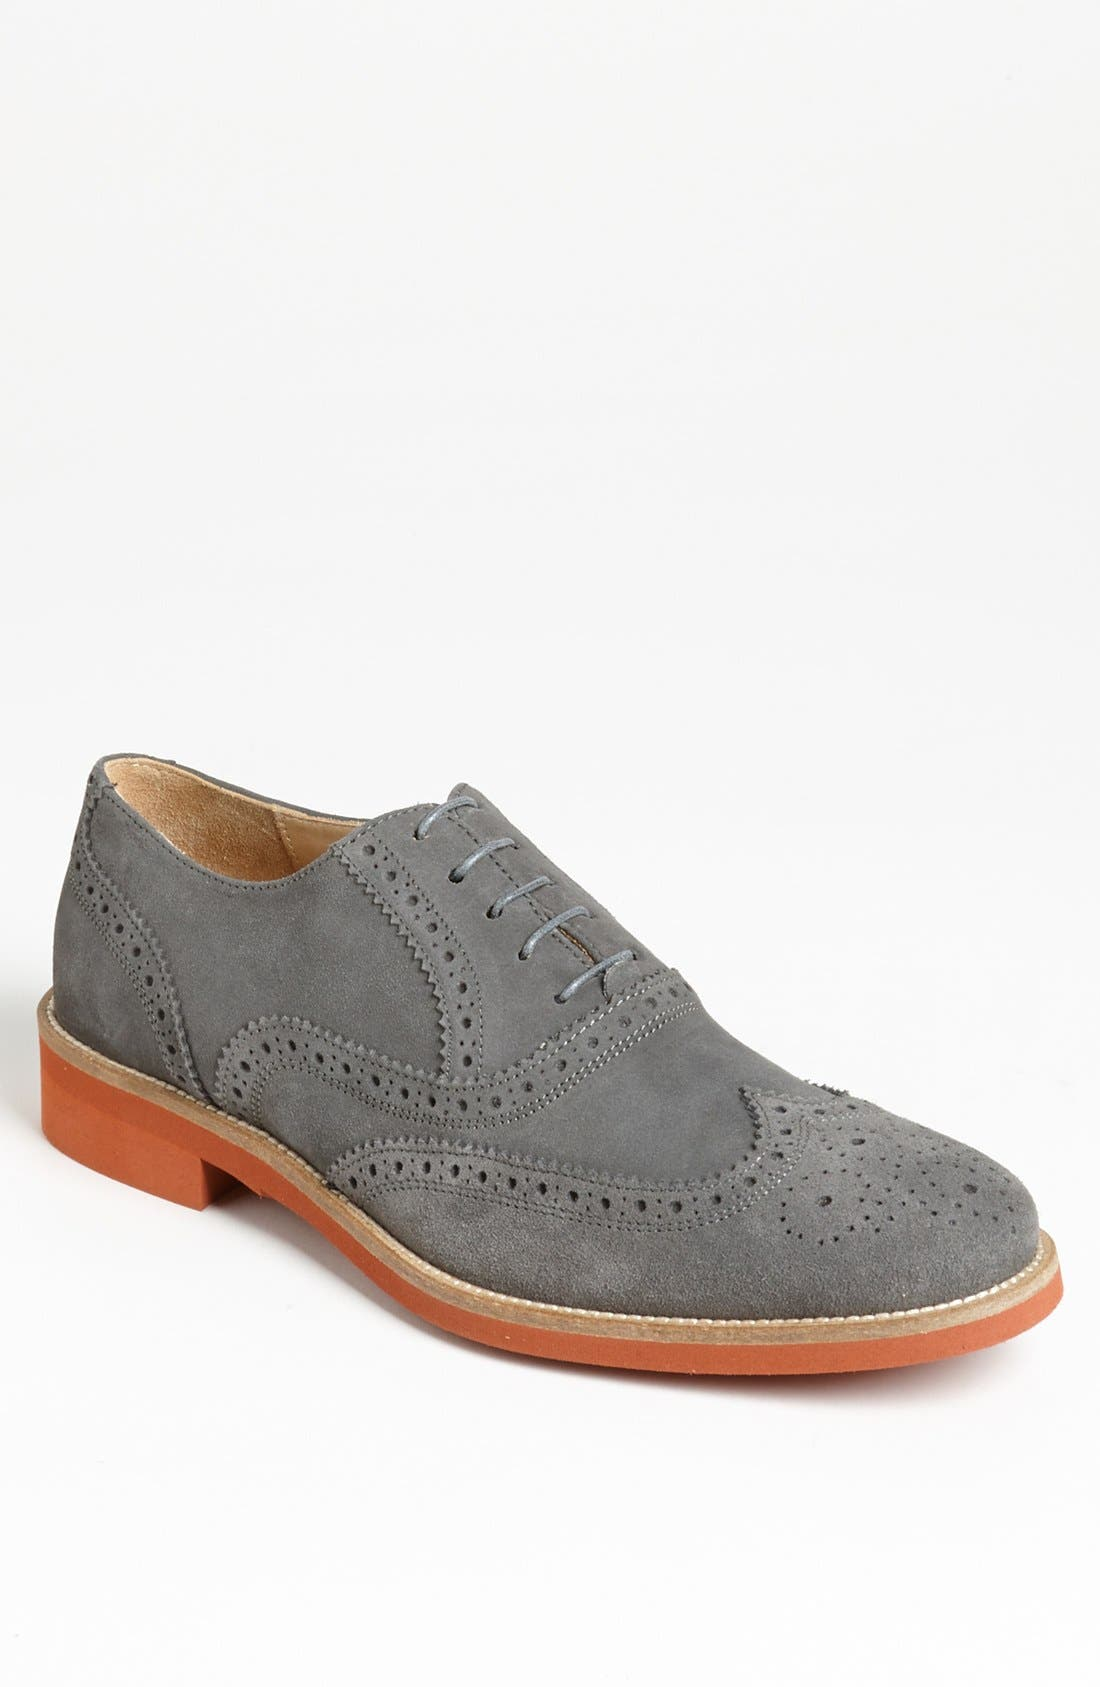 Alternate Image 1 Selected - Thomas Dean Suede Wingtip